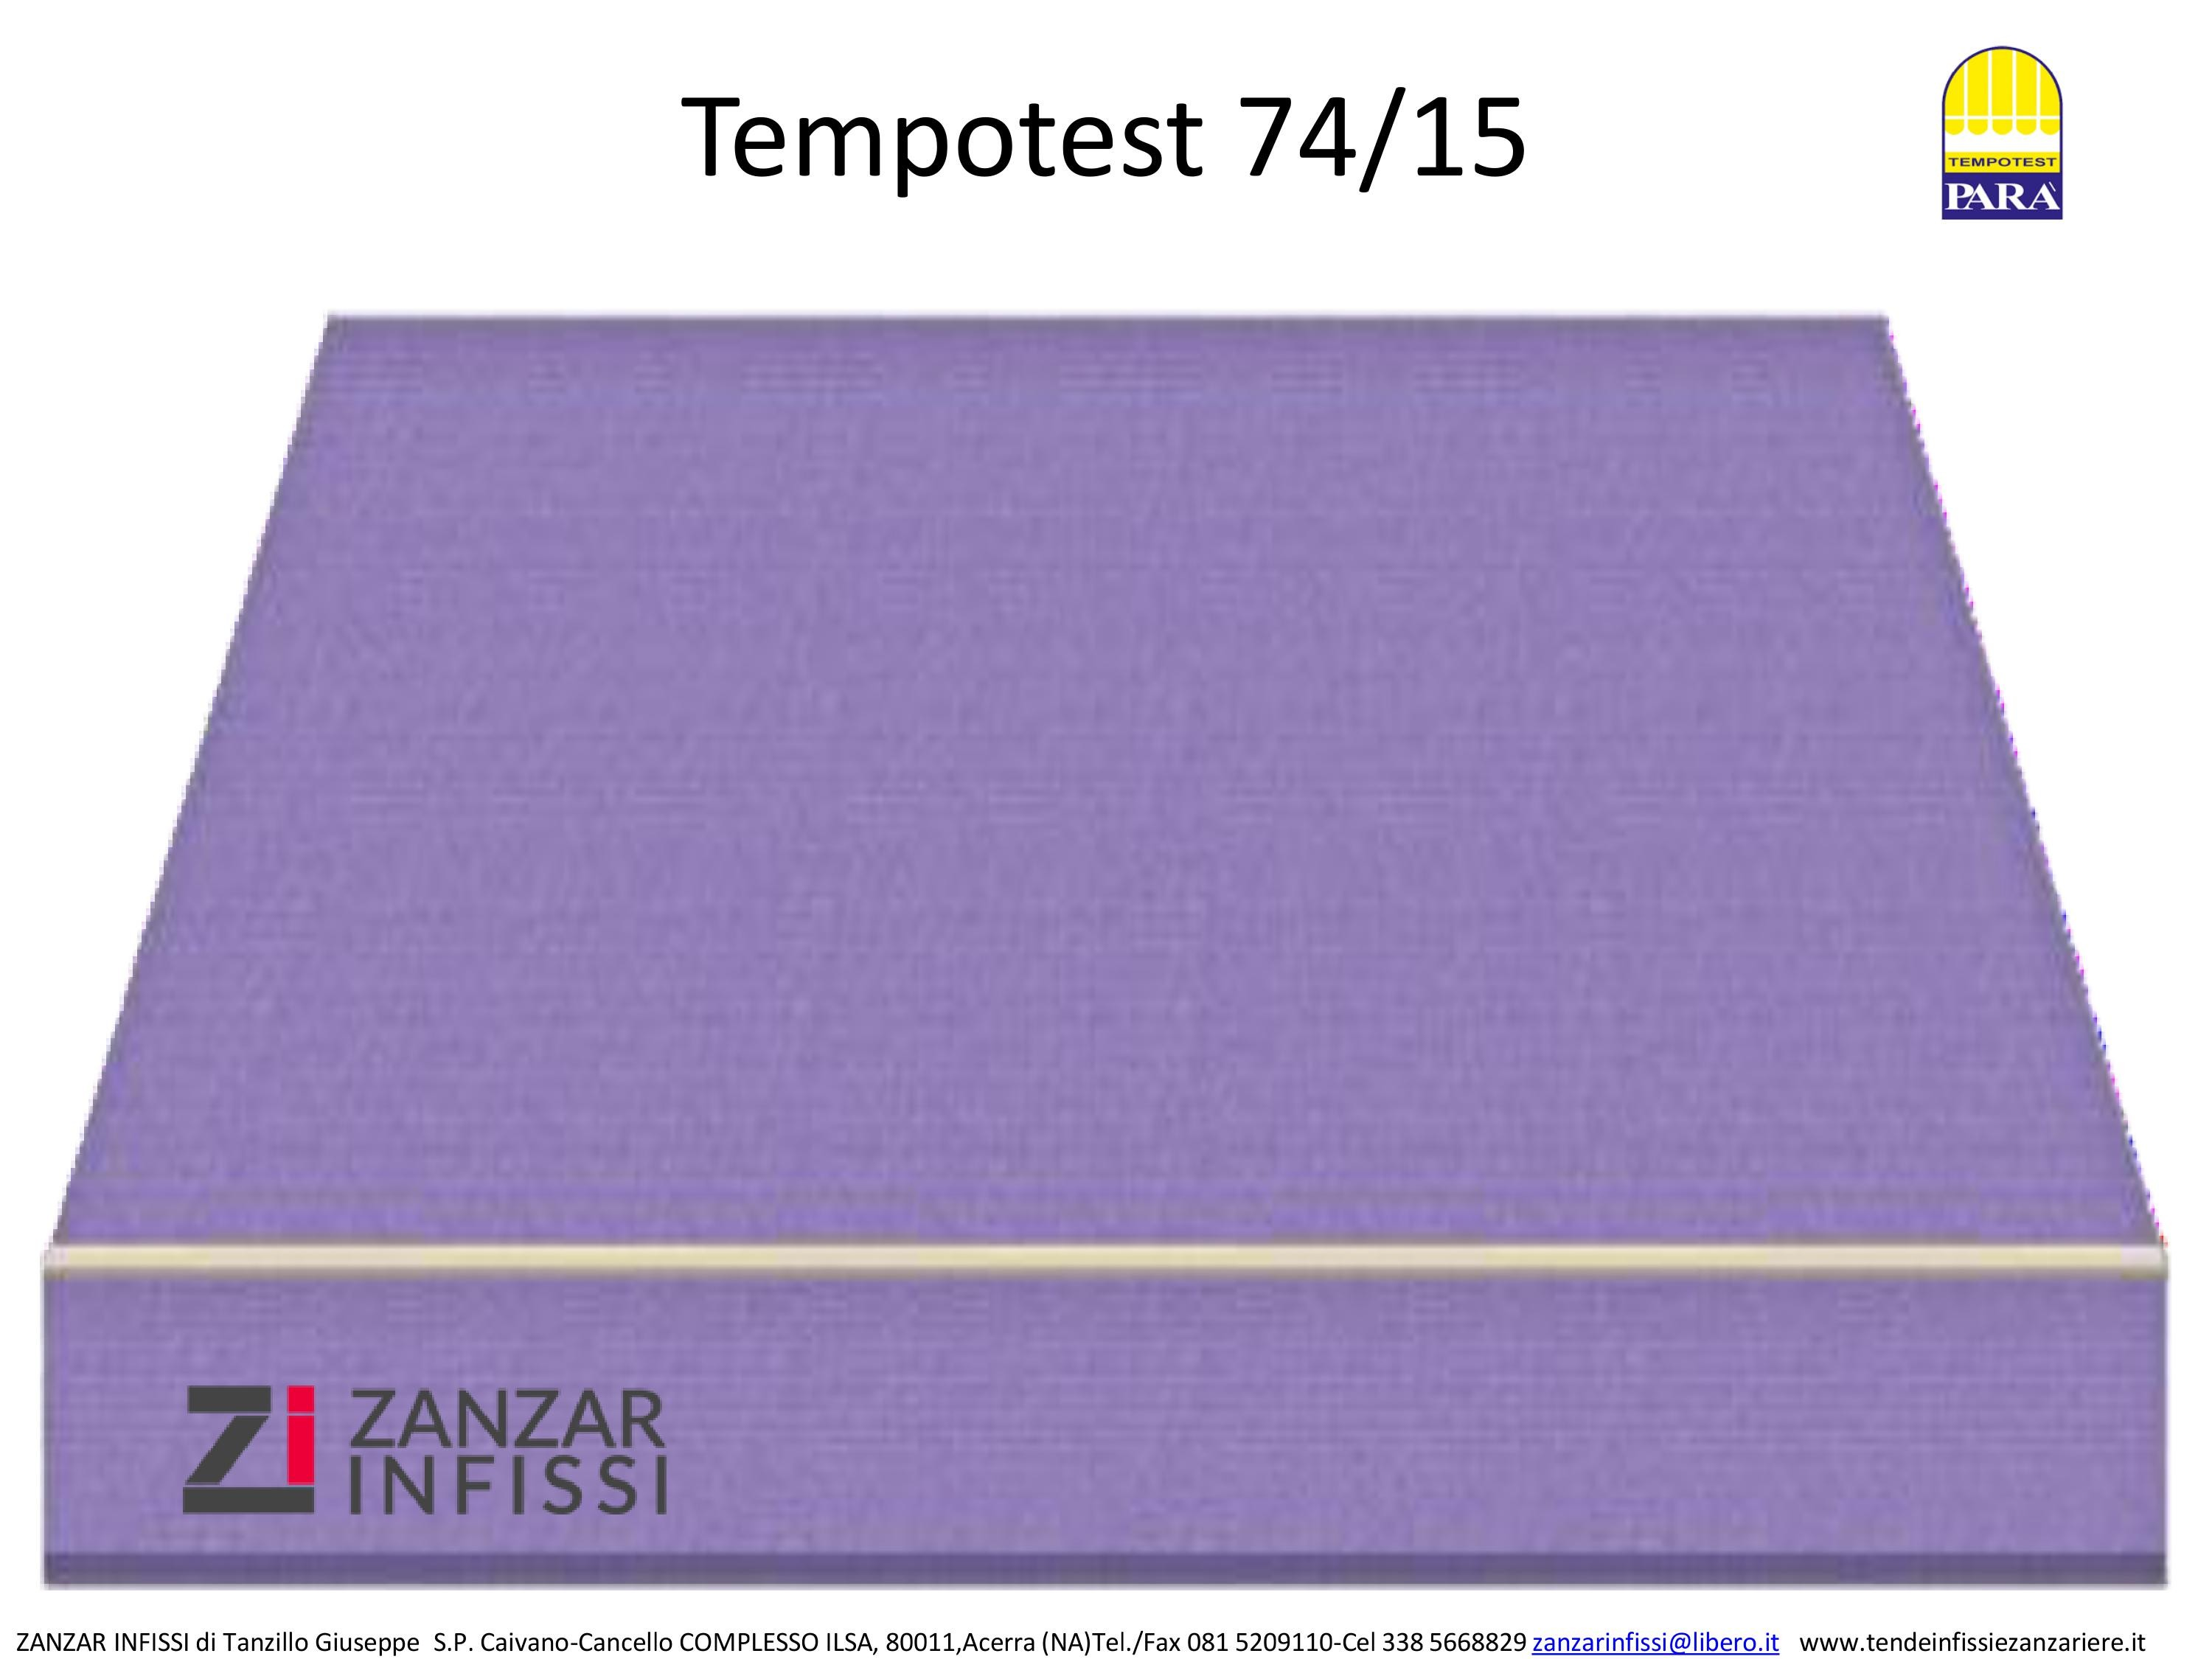 Tempotest 74/15